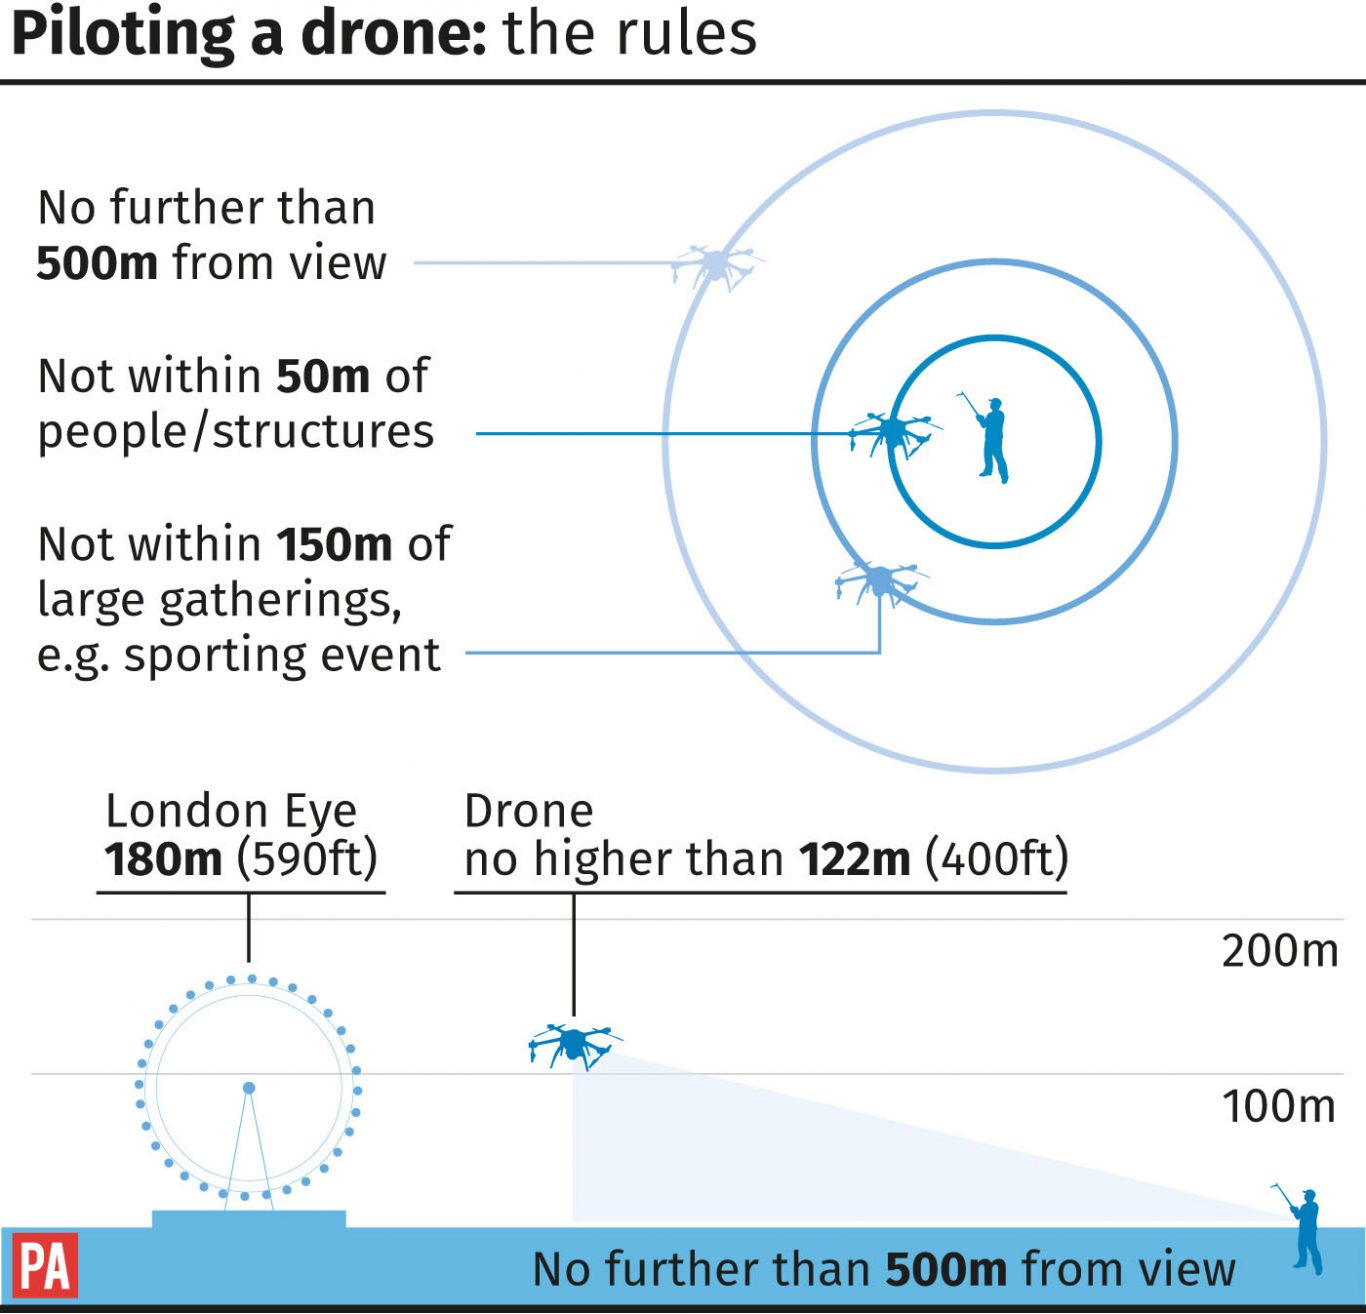 A New Bill Wants to Give Police the Power to Seize Drones